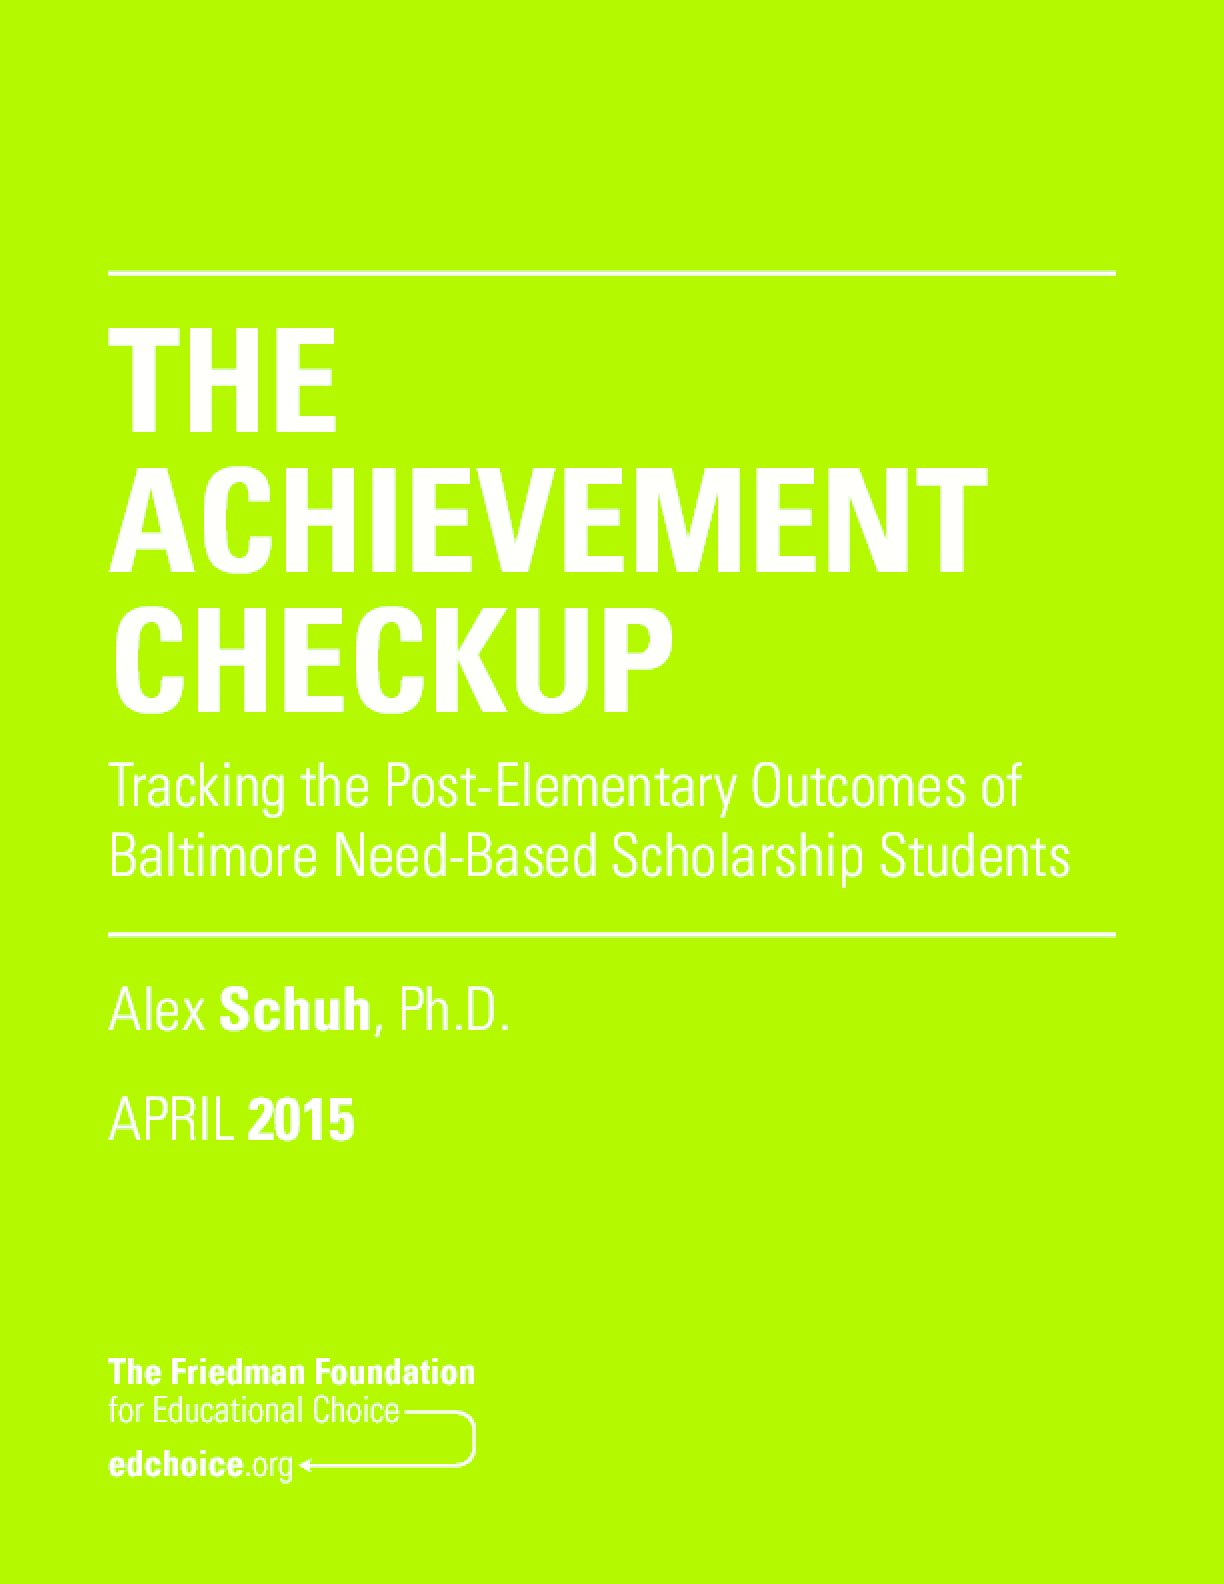 The Achievement Checkup: Tracking the Post-Elementary Outcomes of Baltimore Need-Based Scholarship Students